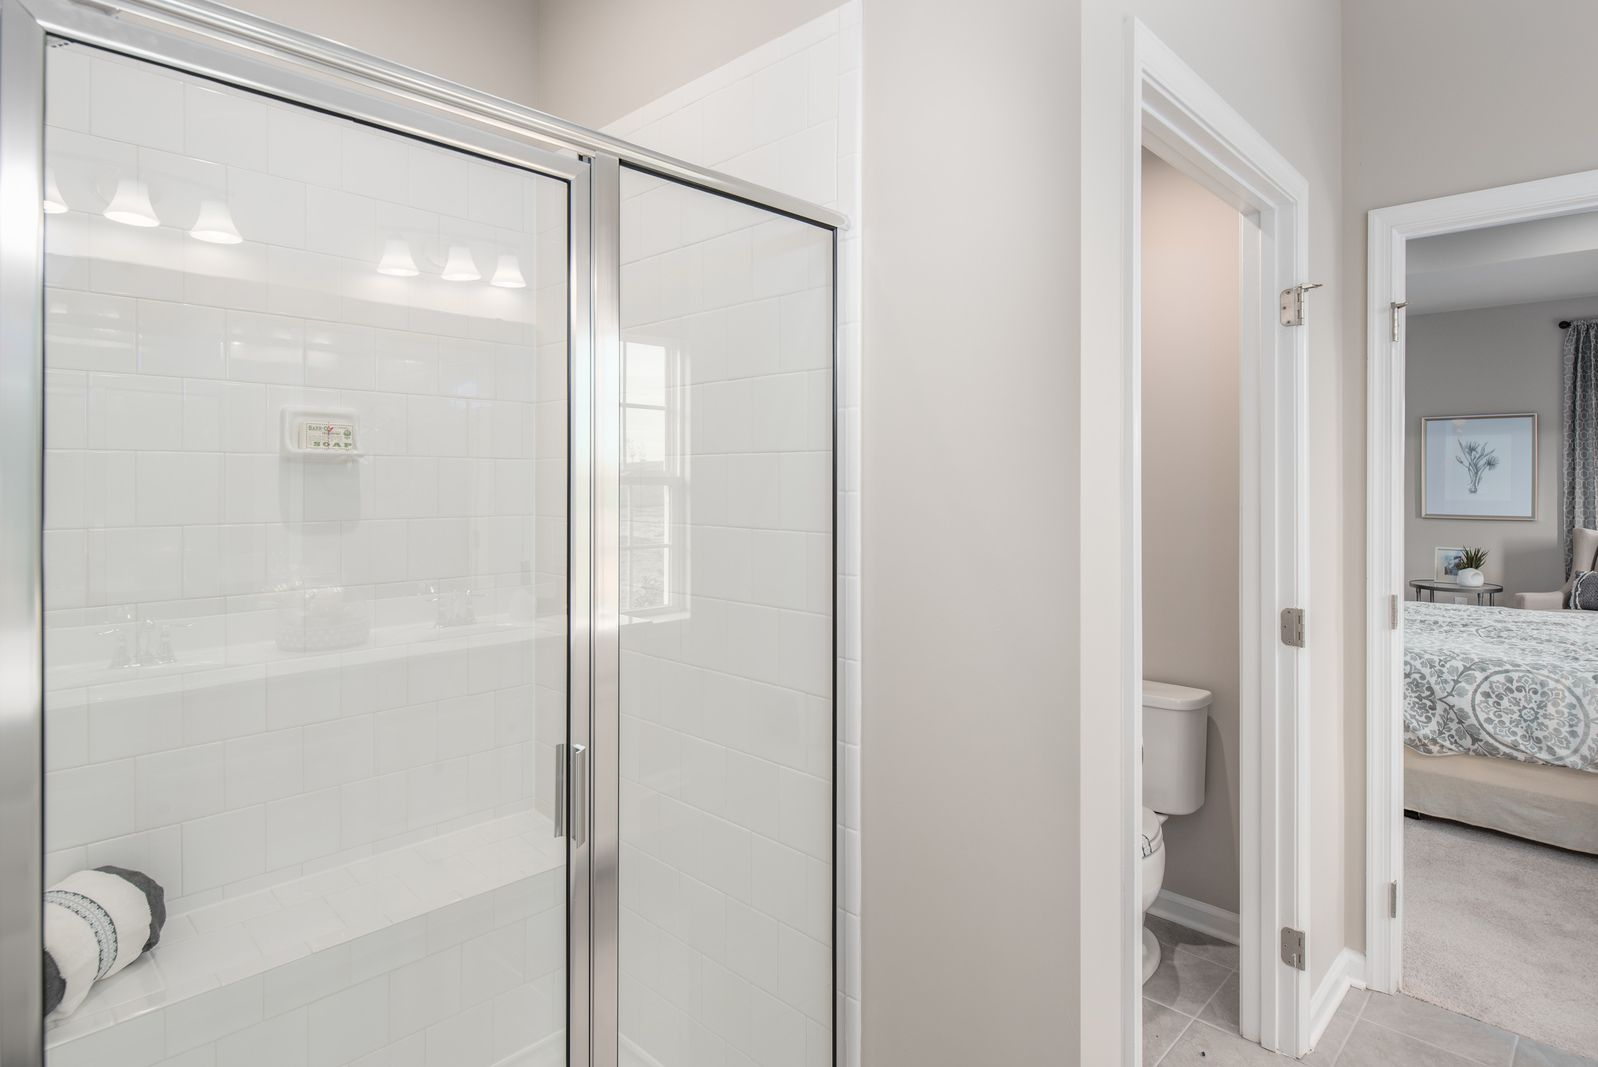 Bathroom featured in the Genoa By Ryan Homes in Indianapolis, IN